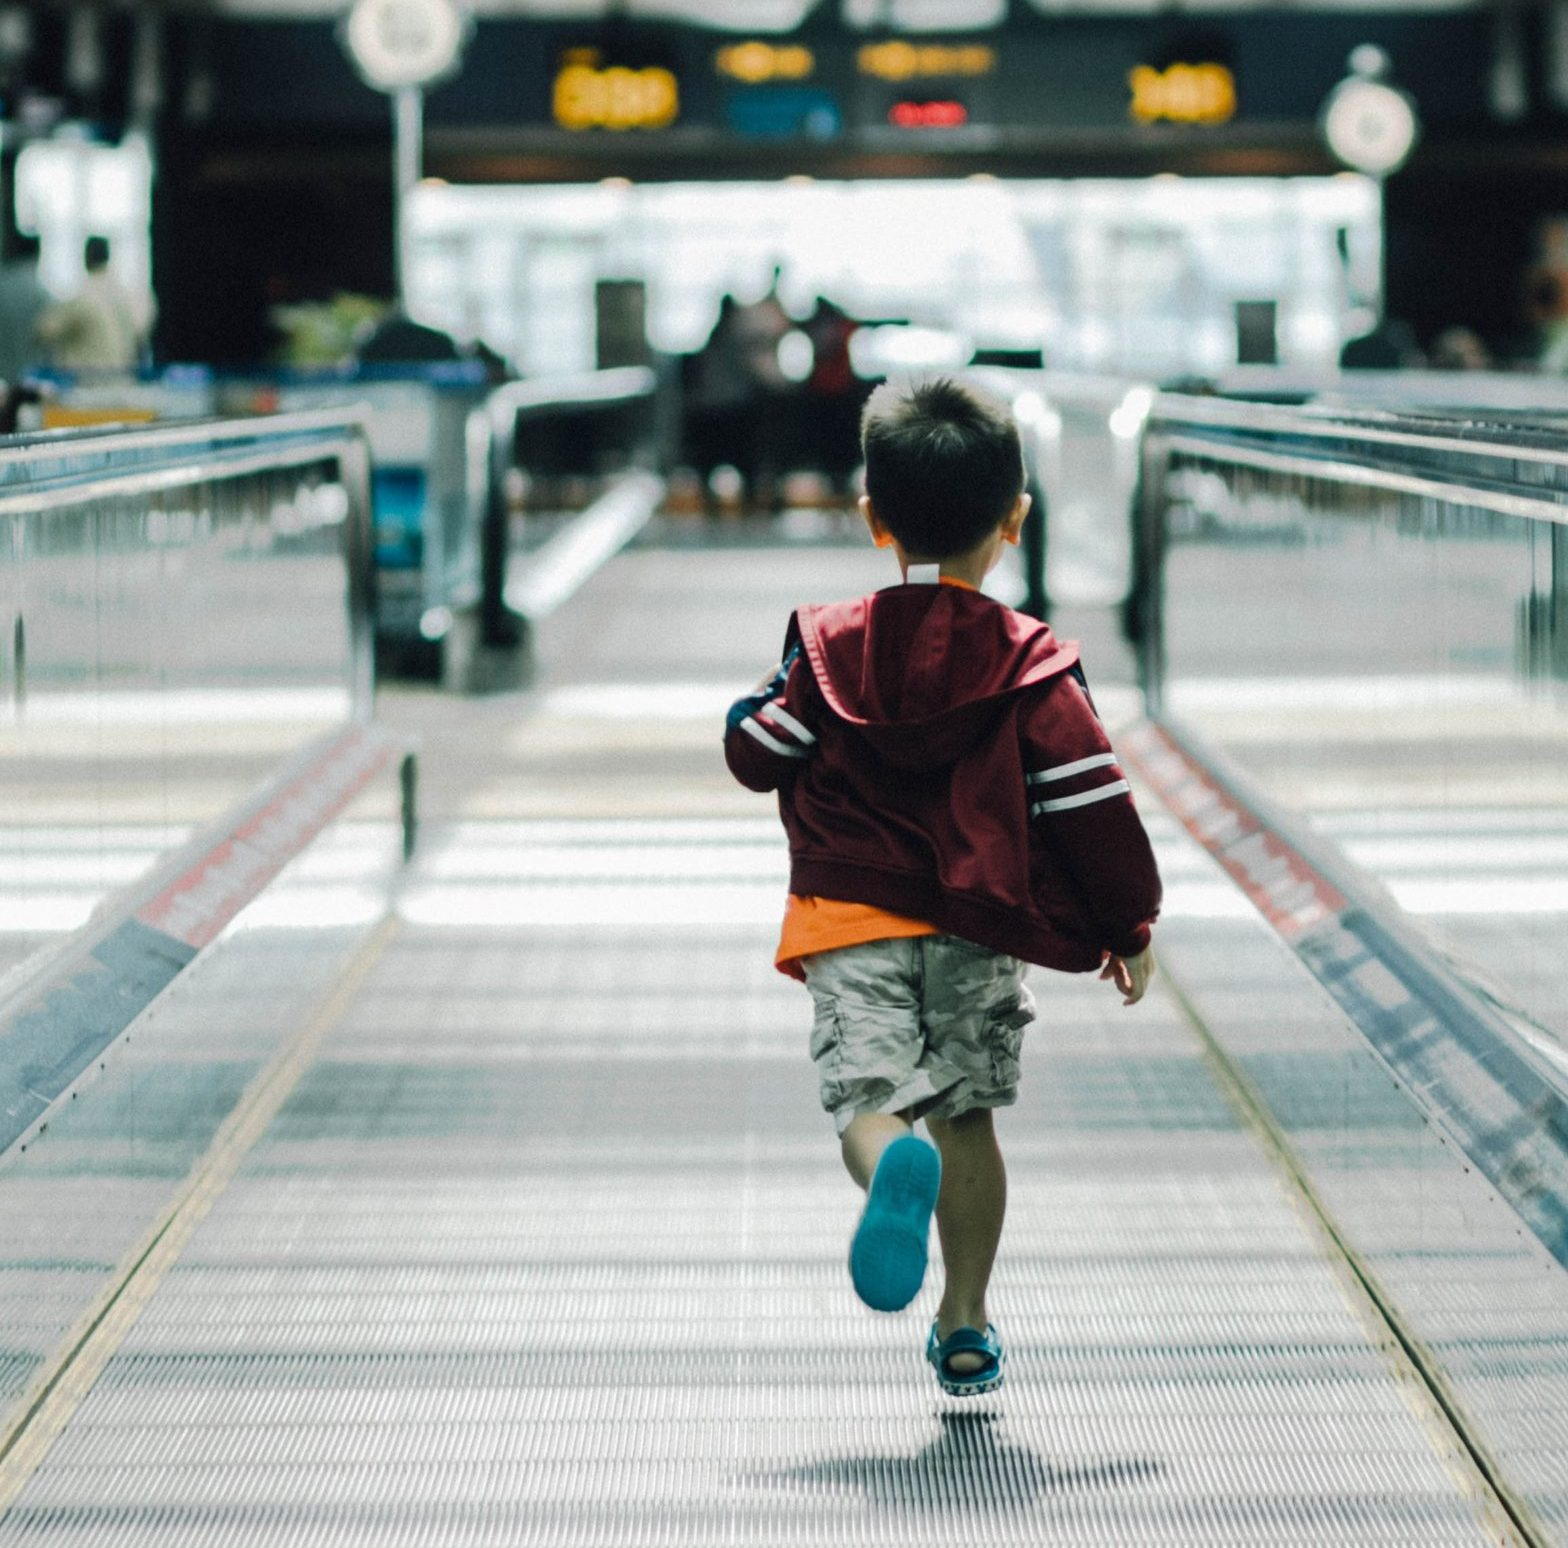 How Should I Handle Pay And Duties When Traveling With A Family?